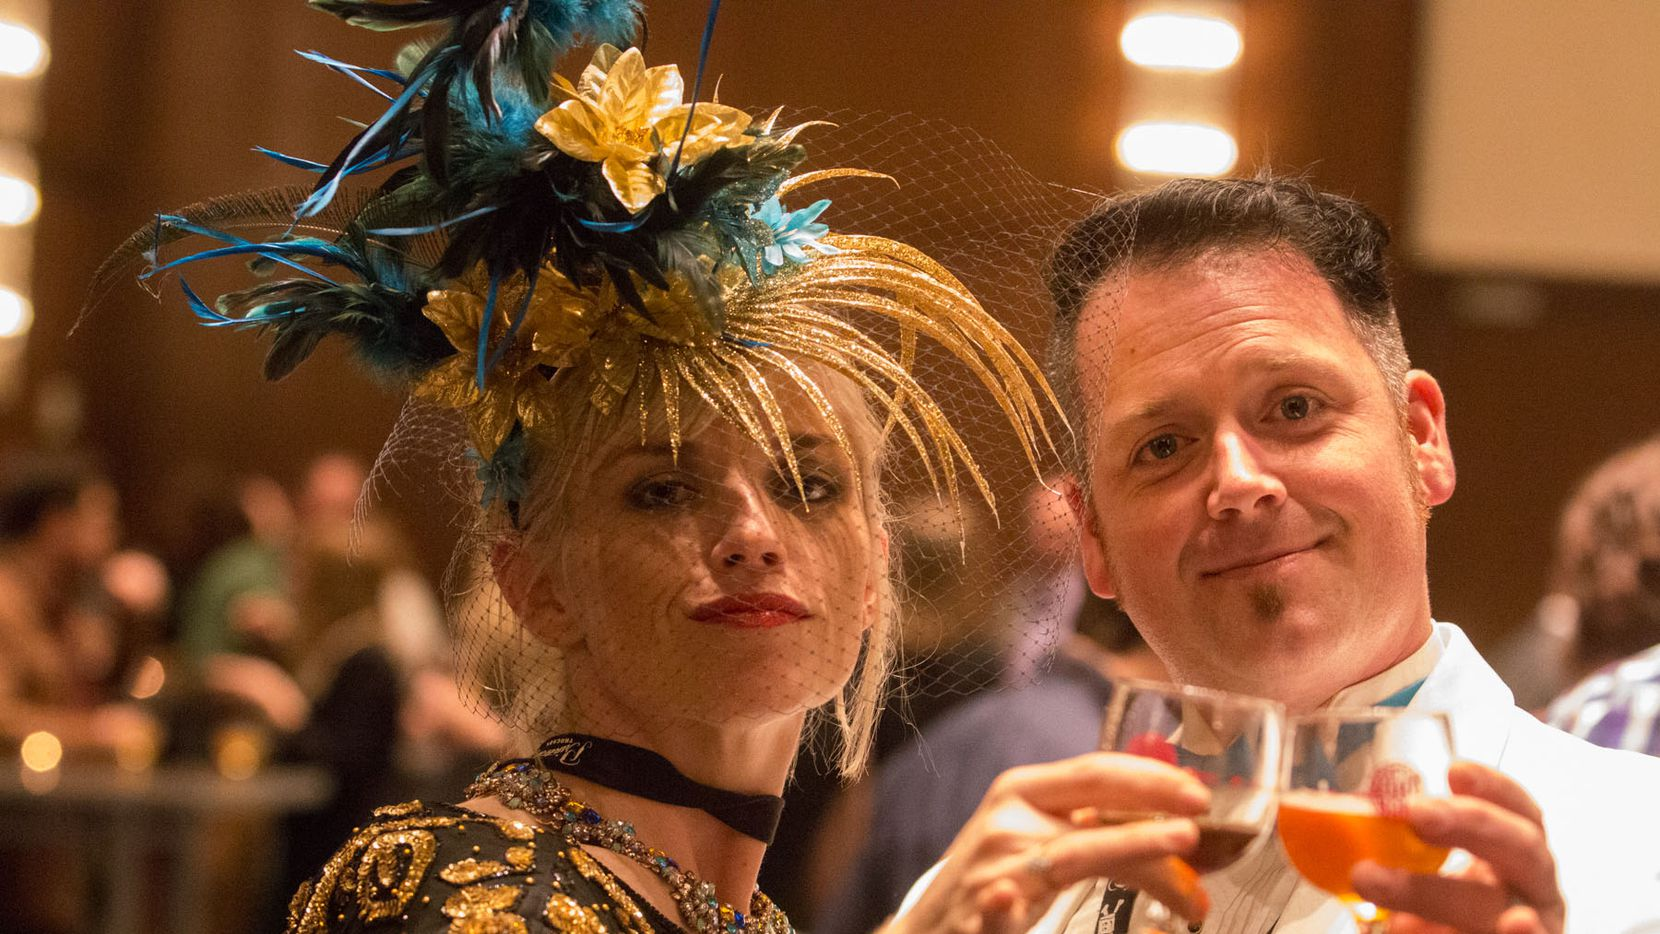 NTX Beer Week held its Second Annual Brewers Ball at the Renaissance Dallas Hotel on November 13, 2015. Michelle and David Muckian